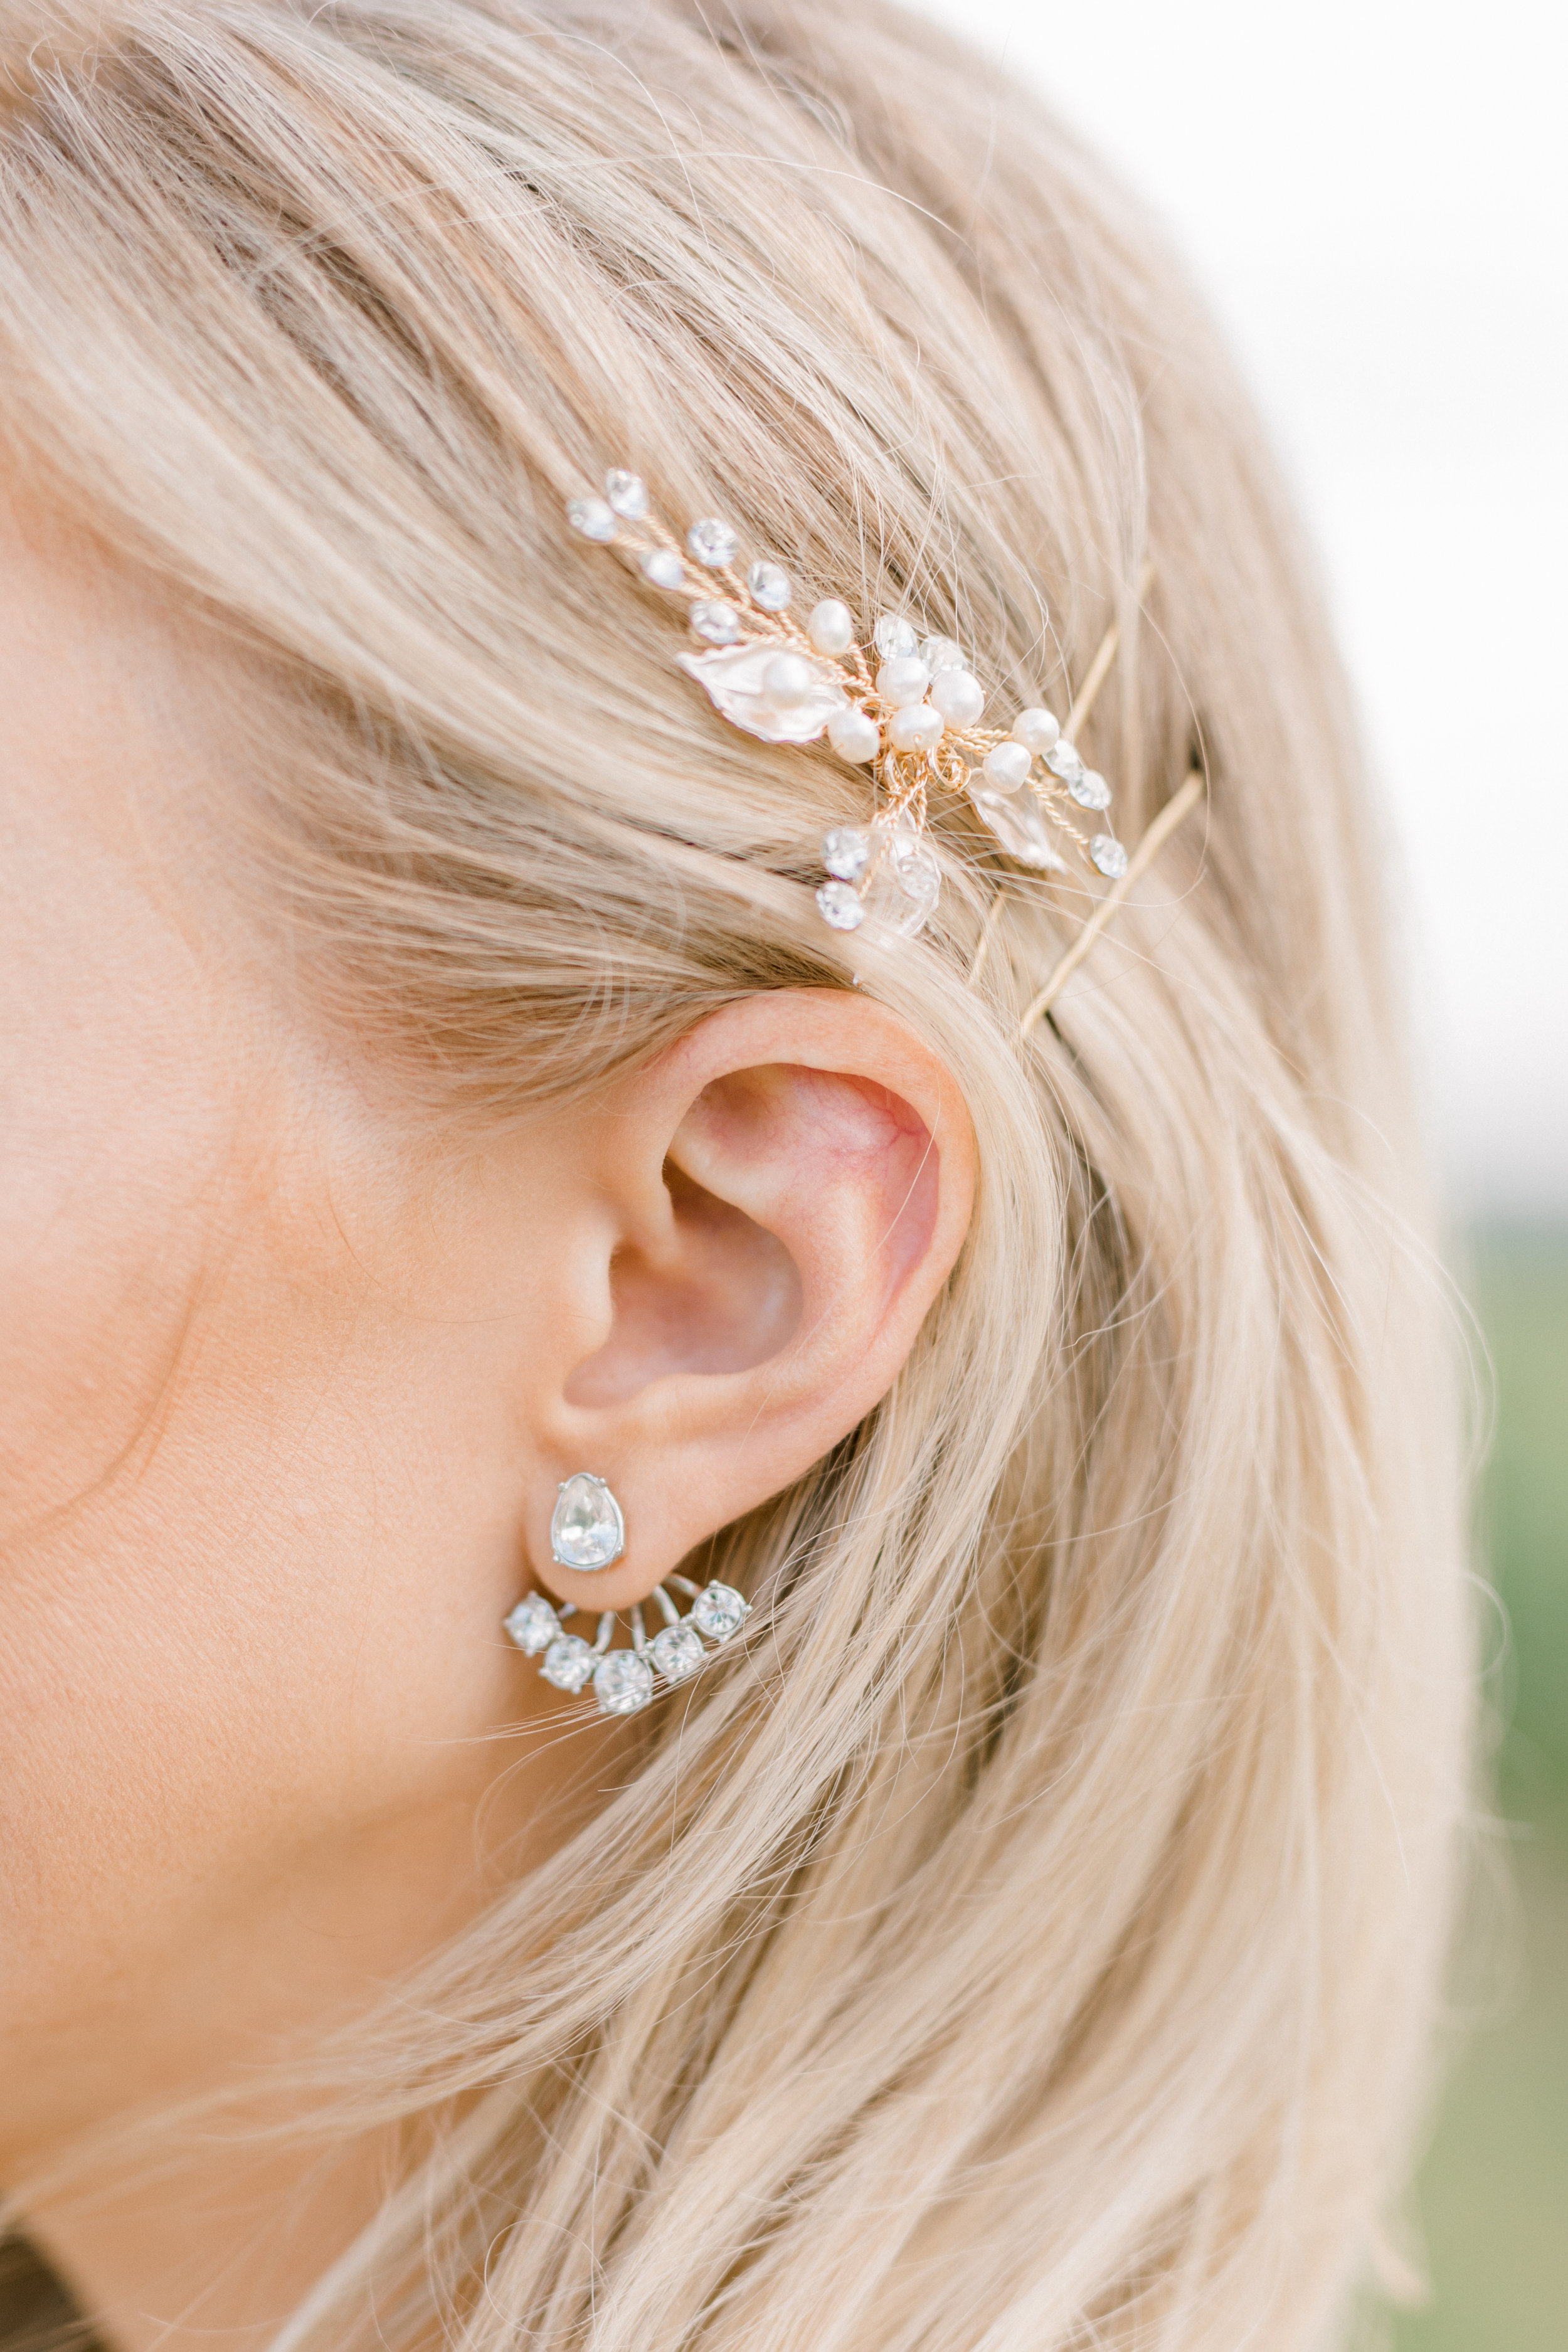 haley-richter-photography-summer-vineyard-winery-wedding-bridal-style-hair-clip-gold-pearls-elegant-simple-leaf-givenchy-silver-floater-illusion-earring-diamonds-jewelry